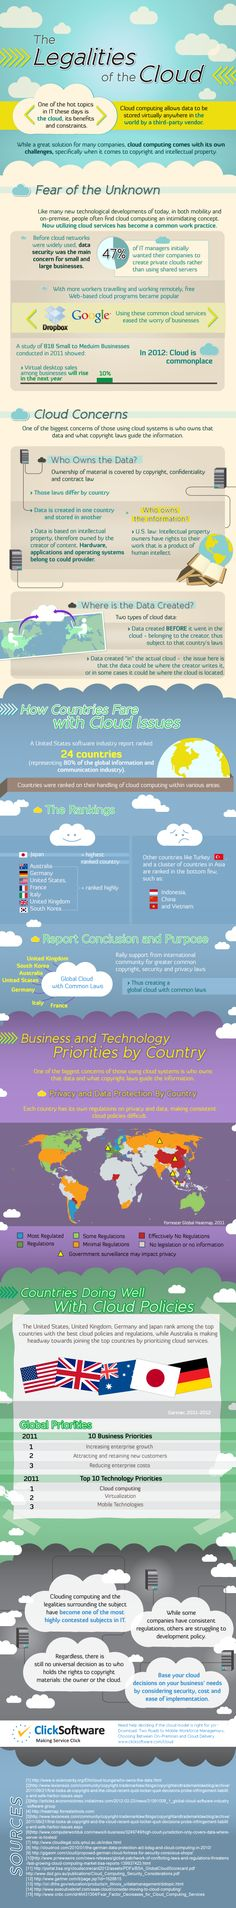 #infographic * THE LEGALITIES OF THE CLOUD * More Tech #infographics » http://pinterest.com/pataplu/infographics-tech/